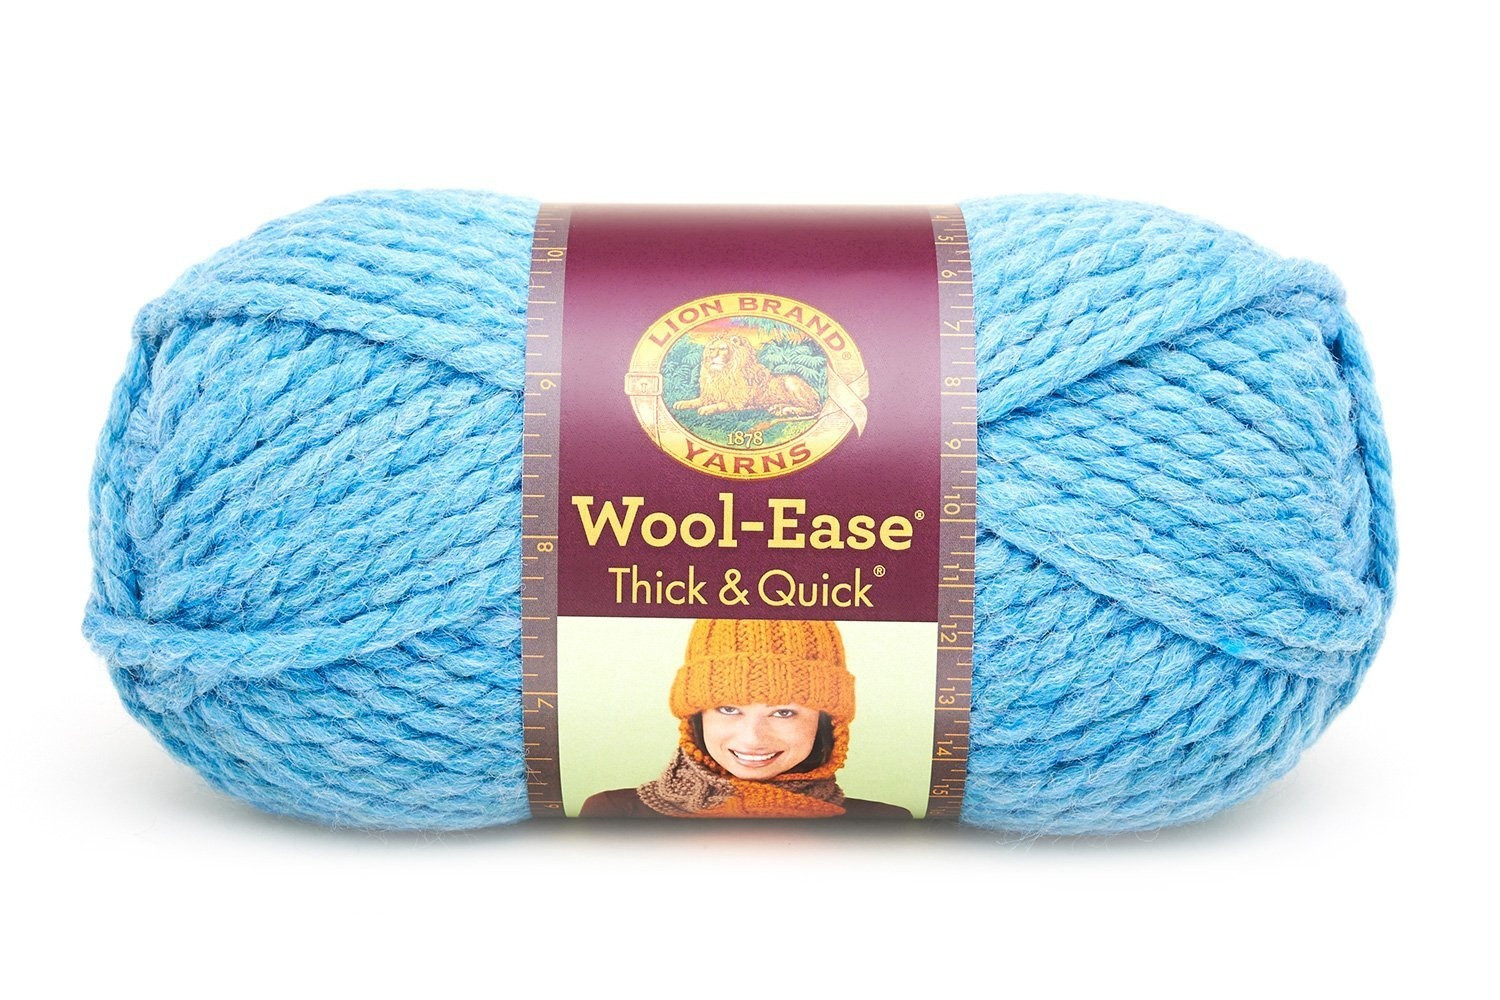 Thick and Quick Yarn Elegant Lion Brand Yarn 640 136f Wool Ease Thick and Quick Yarn Of Amazing 45 Images Thick and Quick Yarn